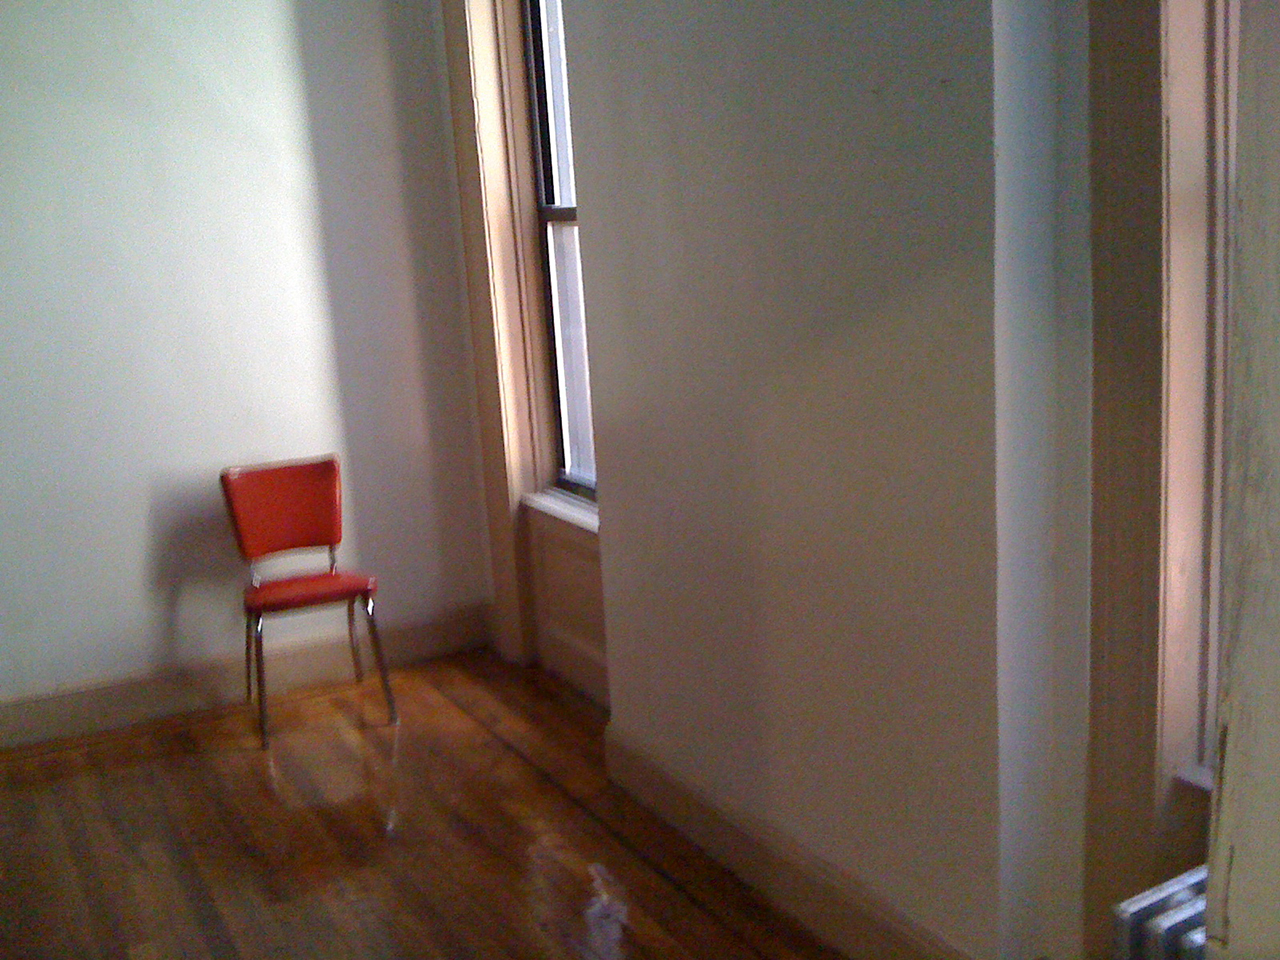 the room  with red Chair in Harlem